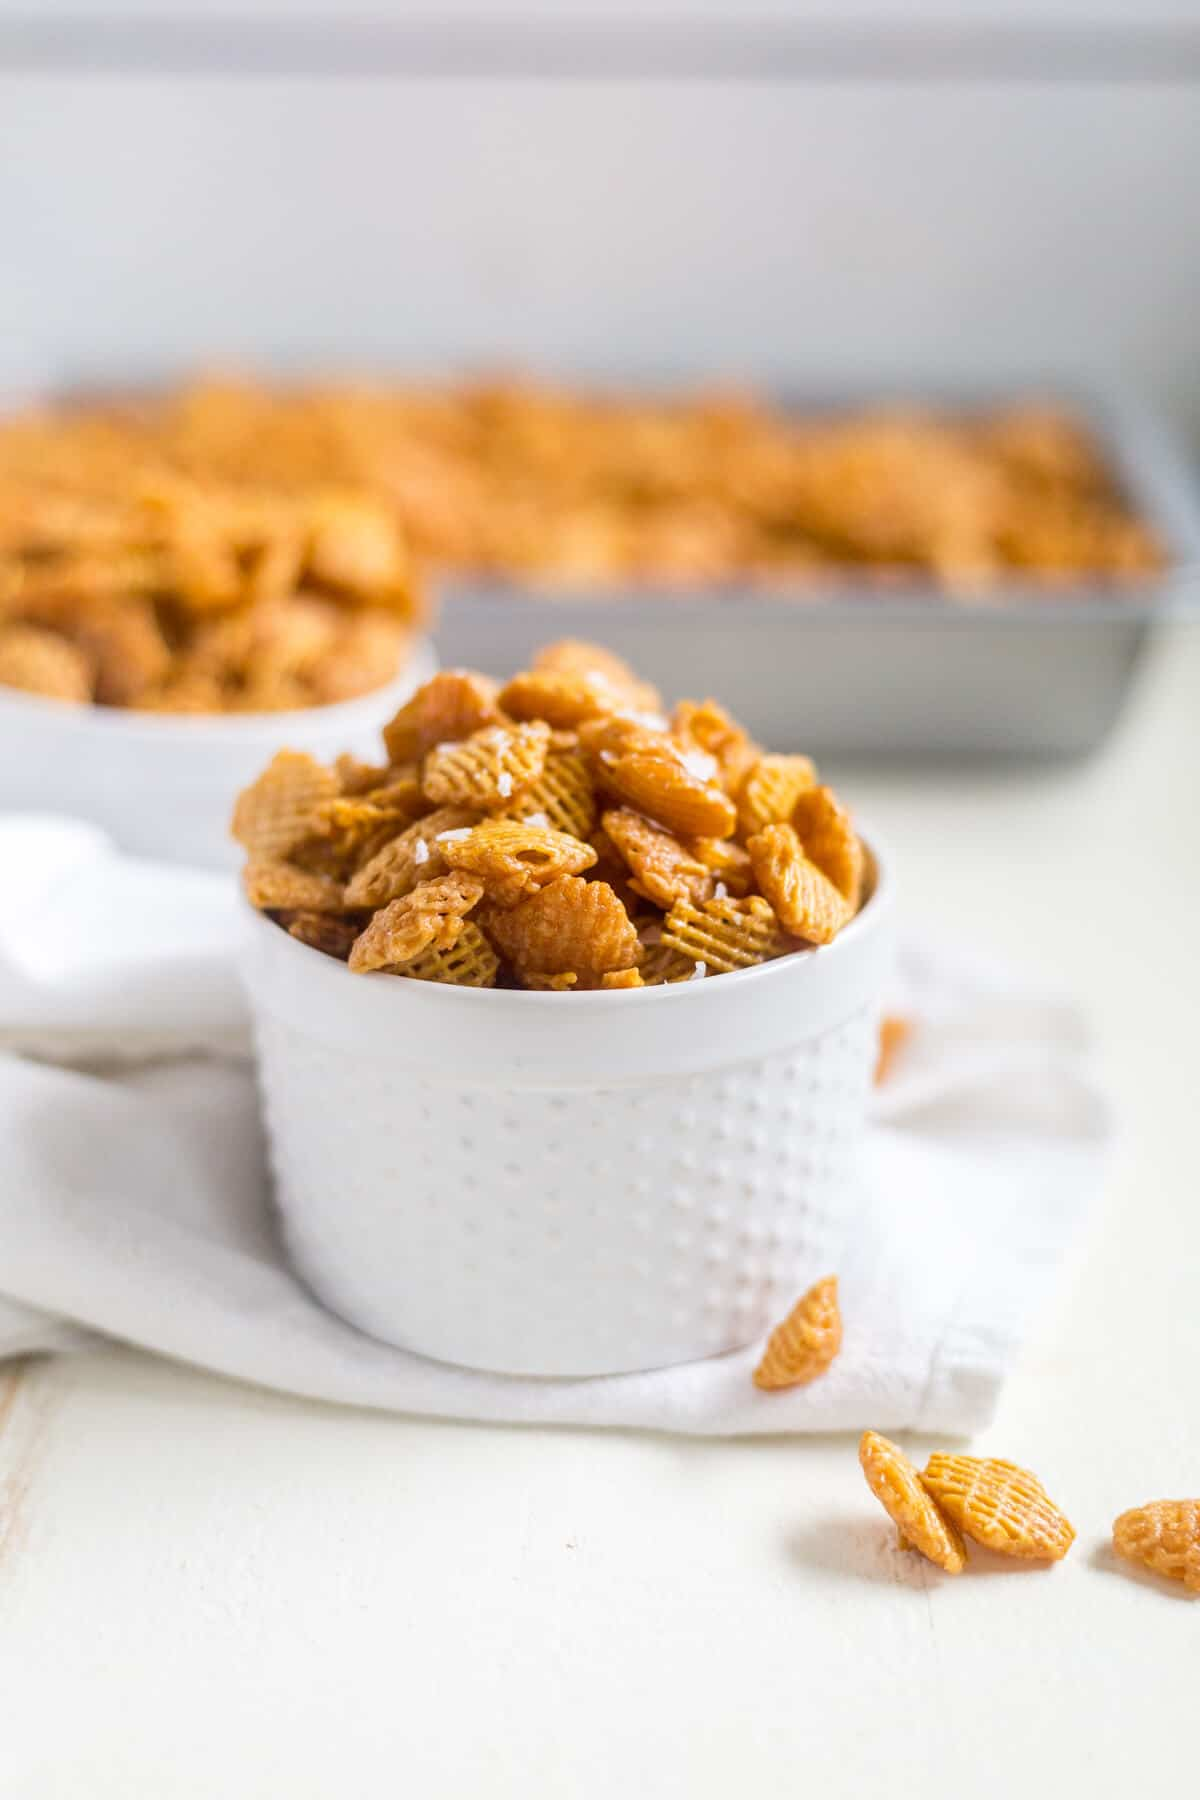 Seriously, this salted caramel crispix party mix is so addicting. You won't be able to take just one handful. This makes a big batch to share with friends and family, especially during the holidays.